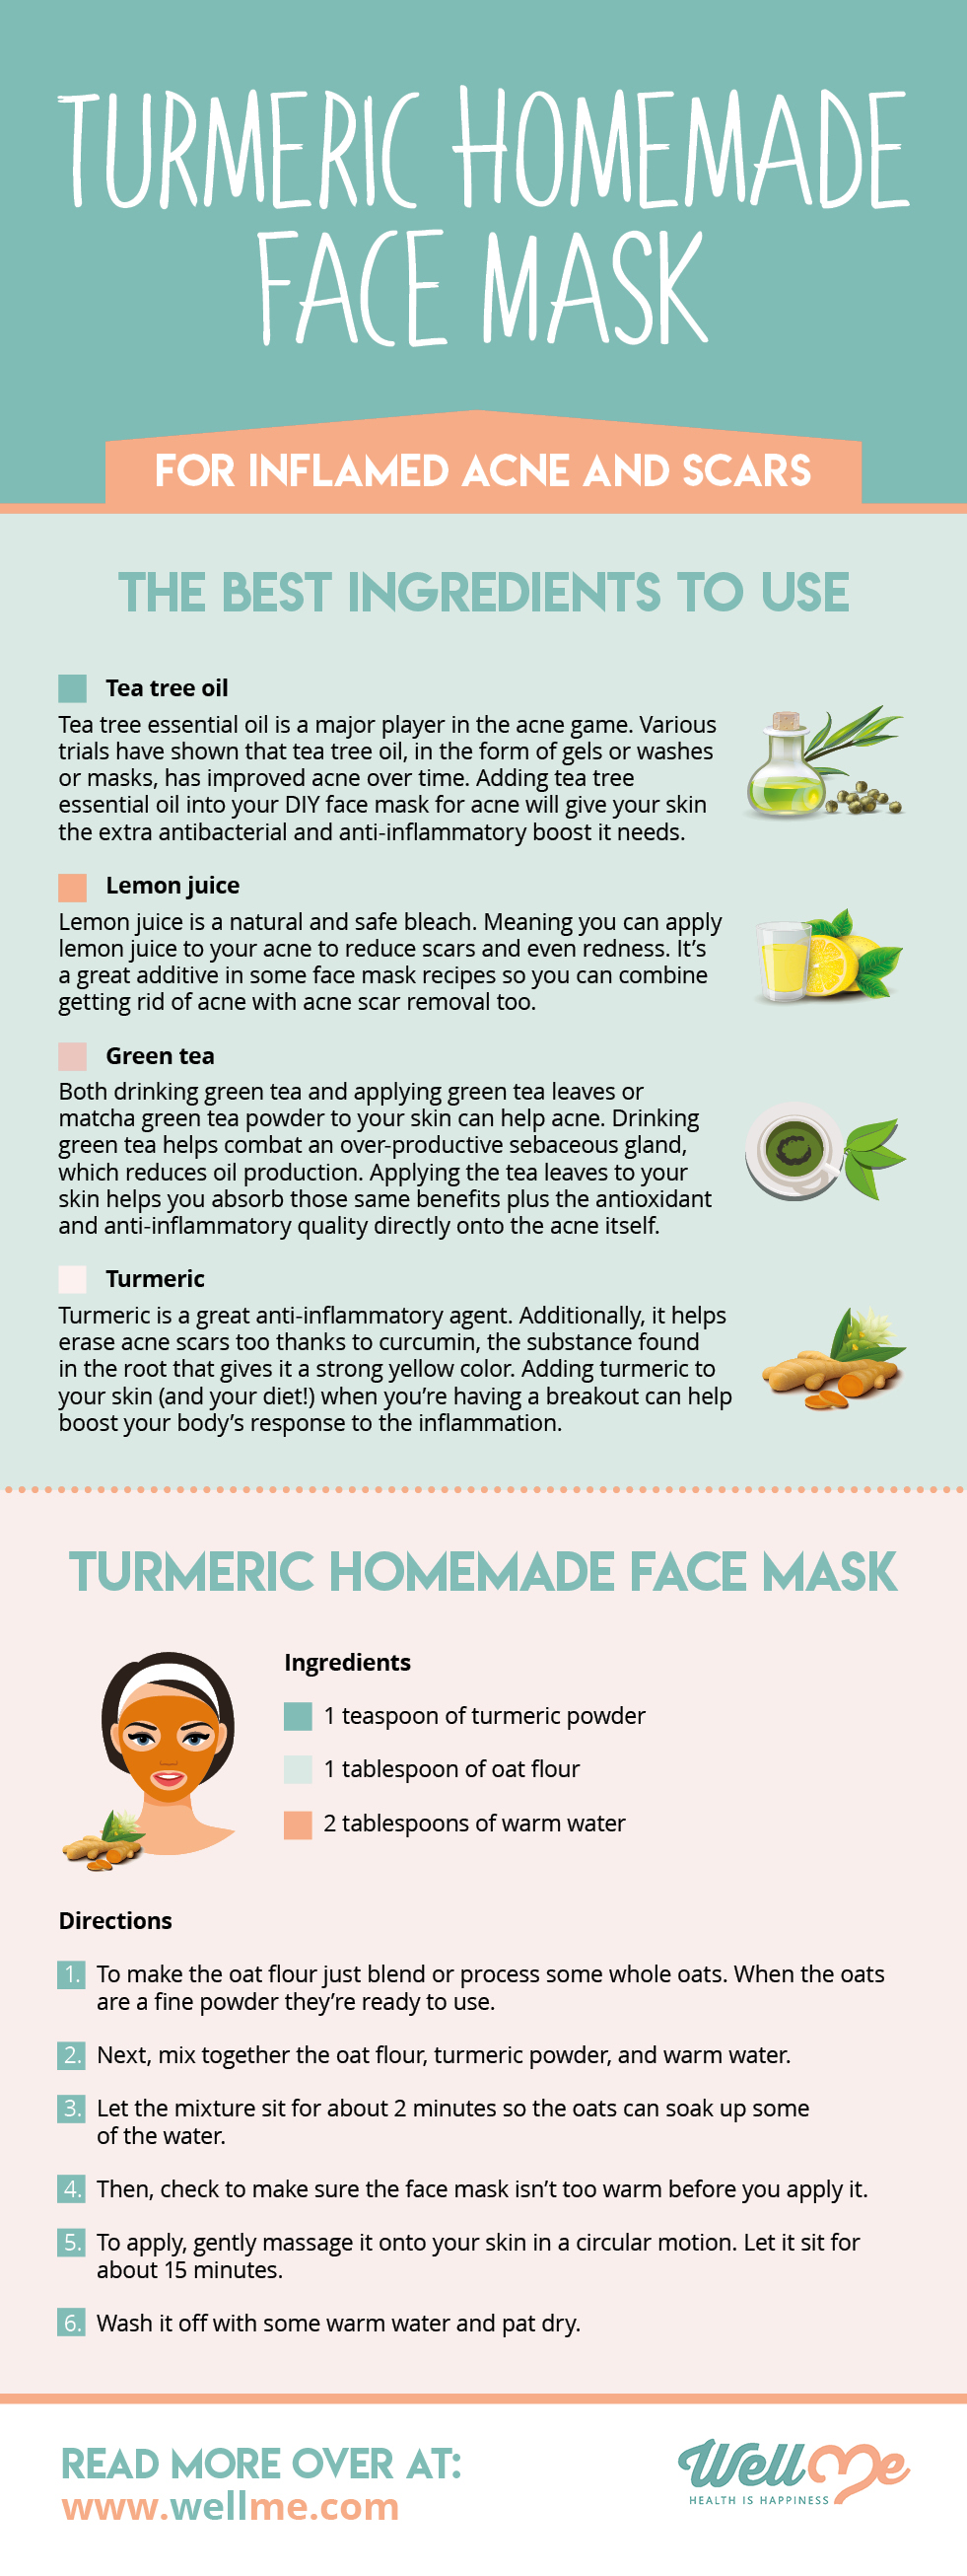 Turmeric Homemade Face Mask For Inflamed Acne and Scars infographic